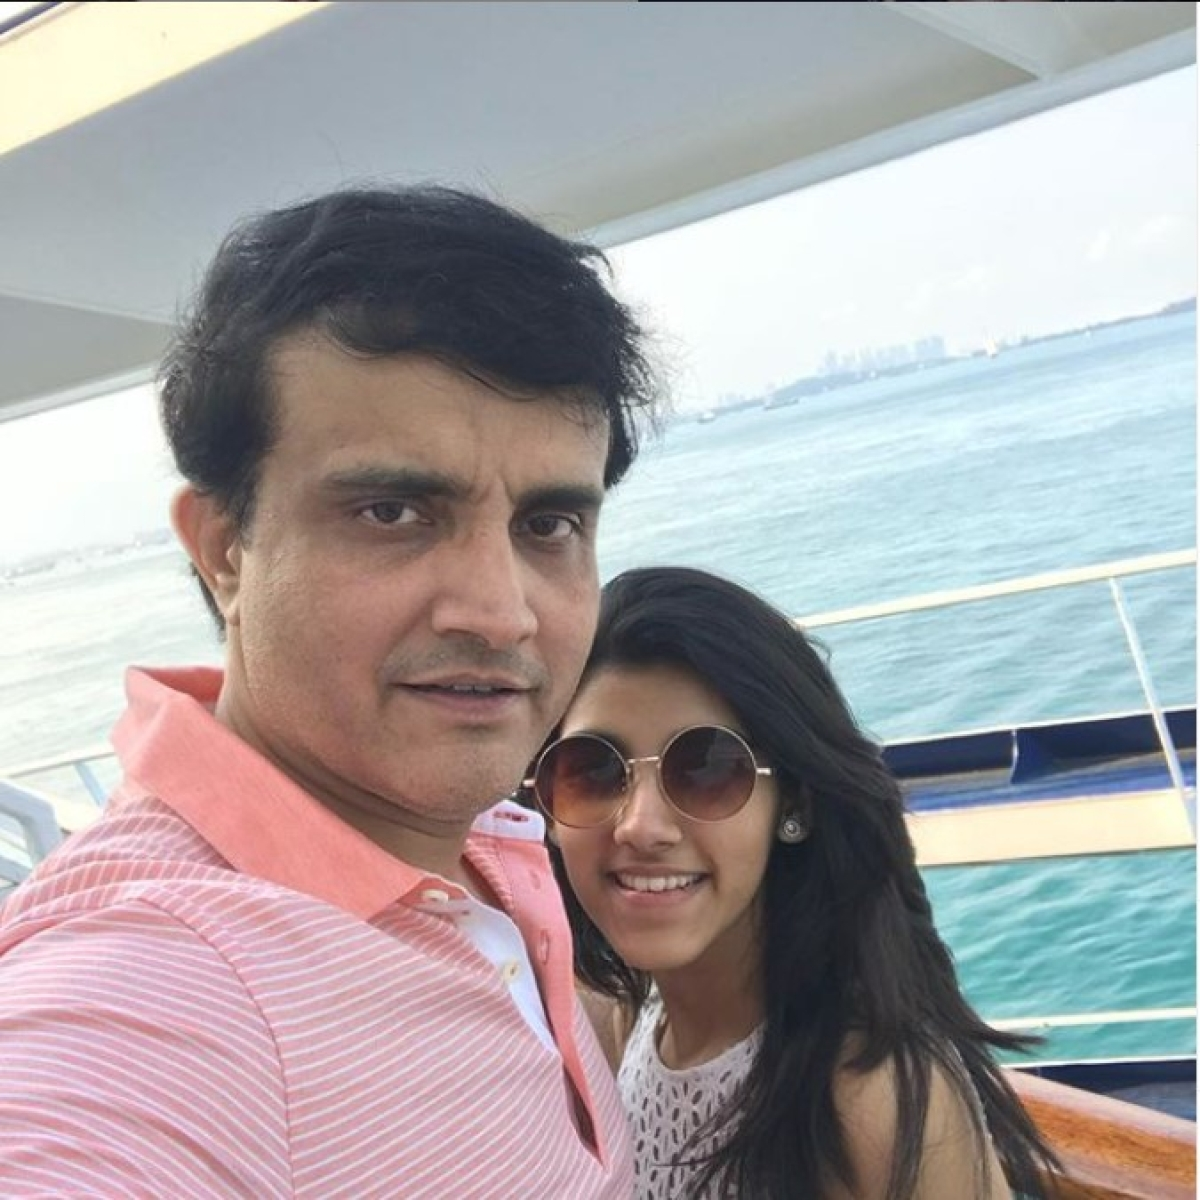 'She is too young...': Sourav Ganguly refuses to respect daughter's political agency